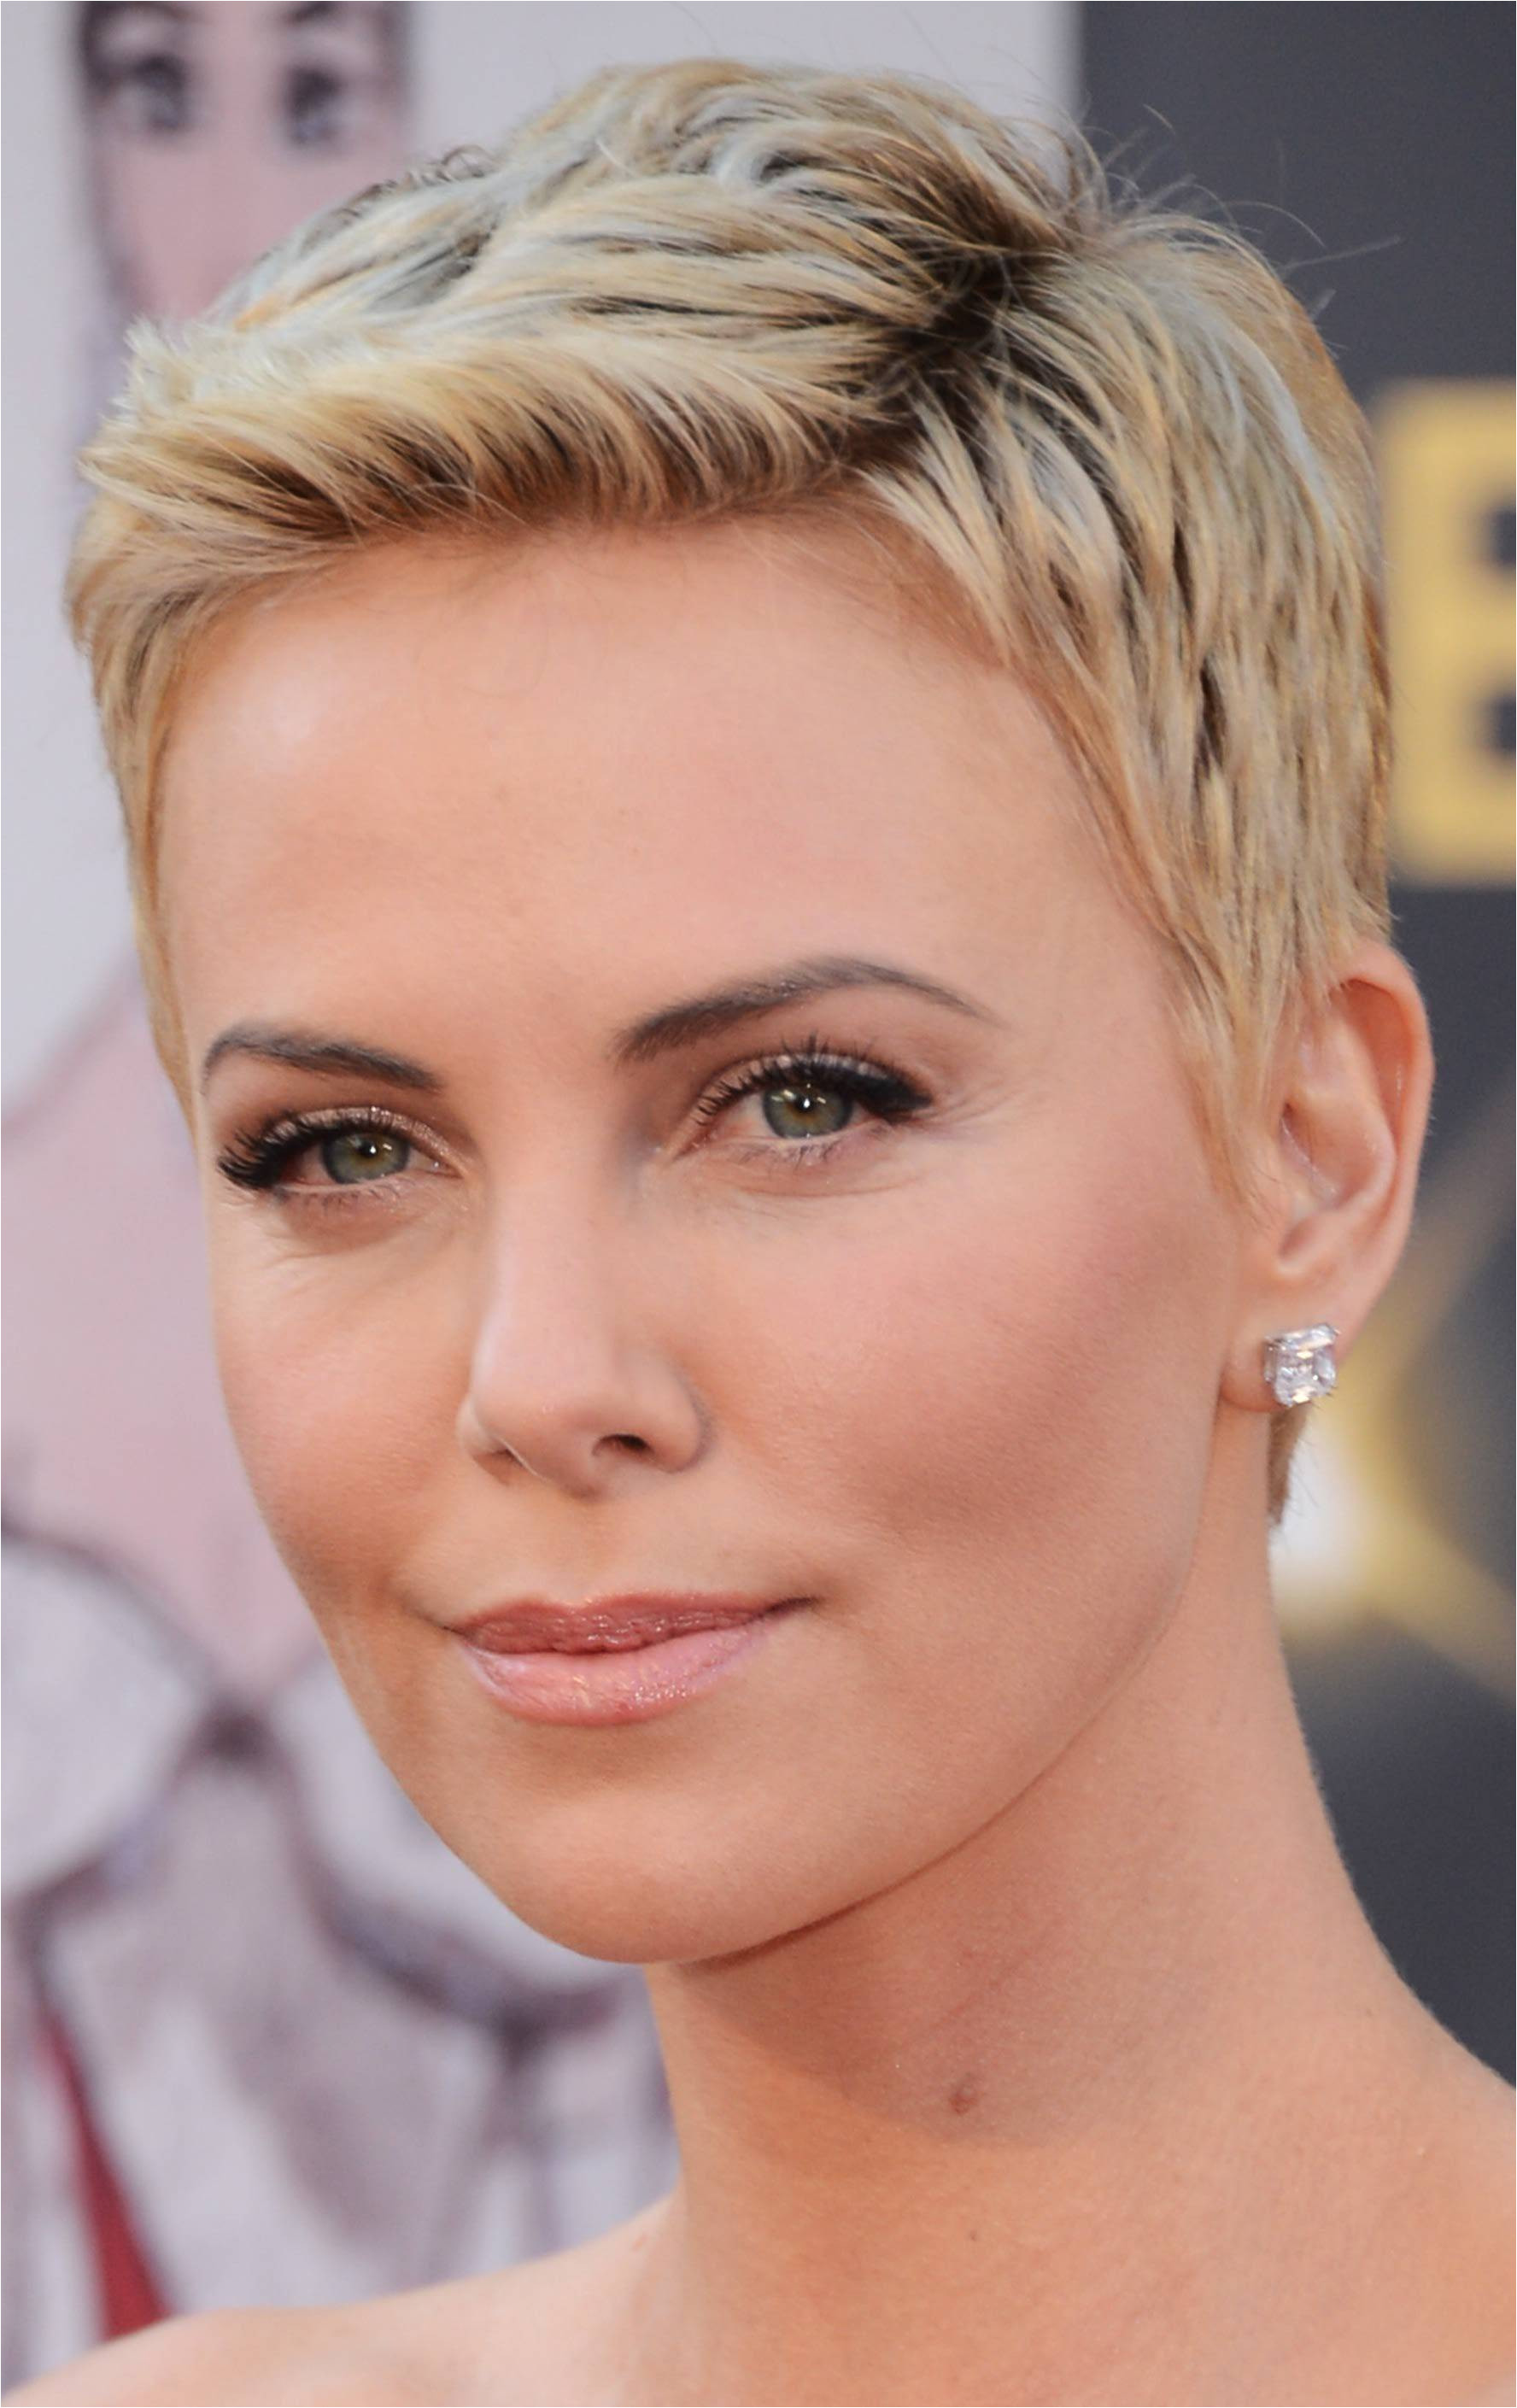 Hairstyles for Balding Crown Awesome Hairstyle for Thinning Hair Female Short Haircut for Thick Hair 0d